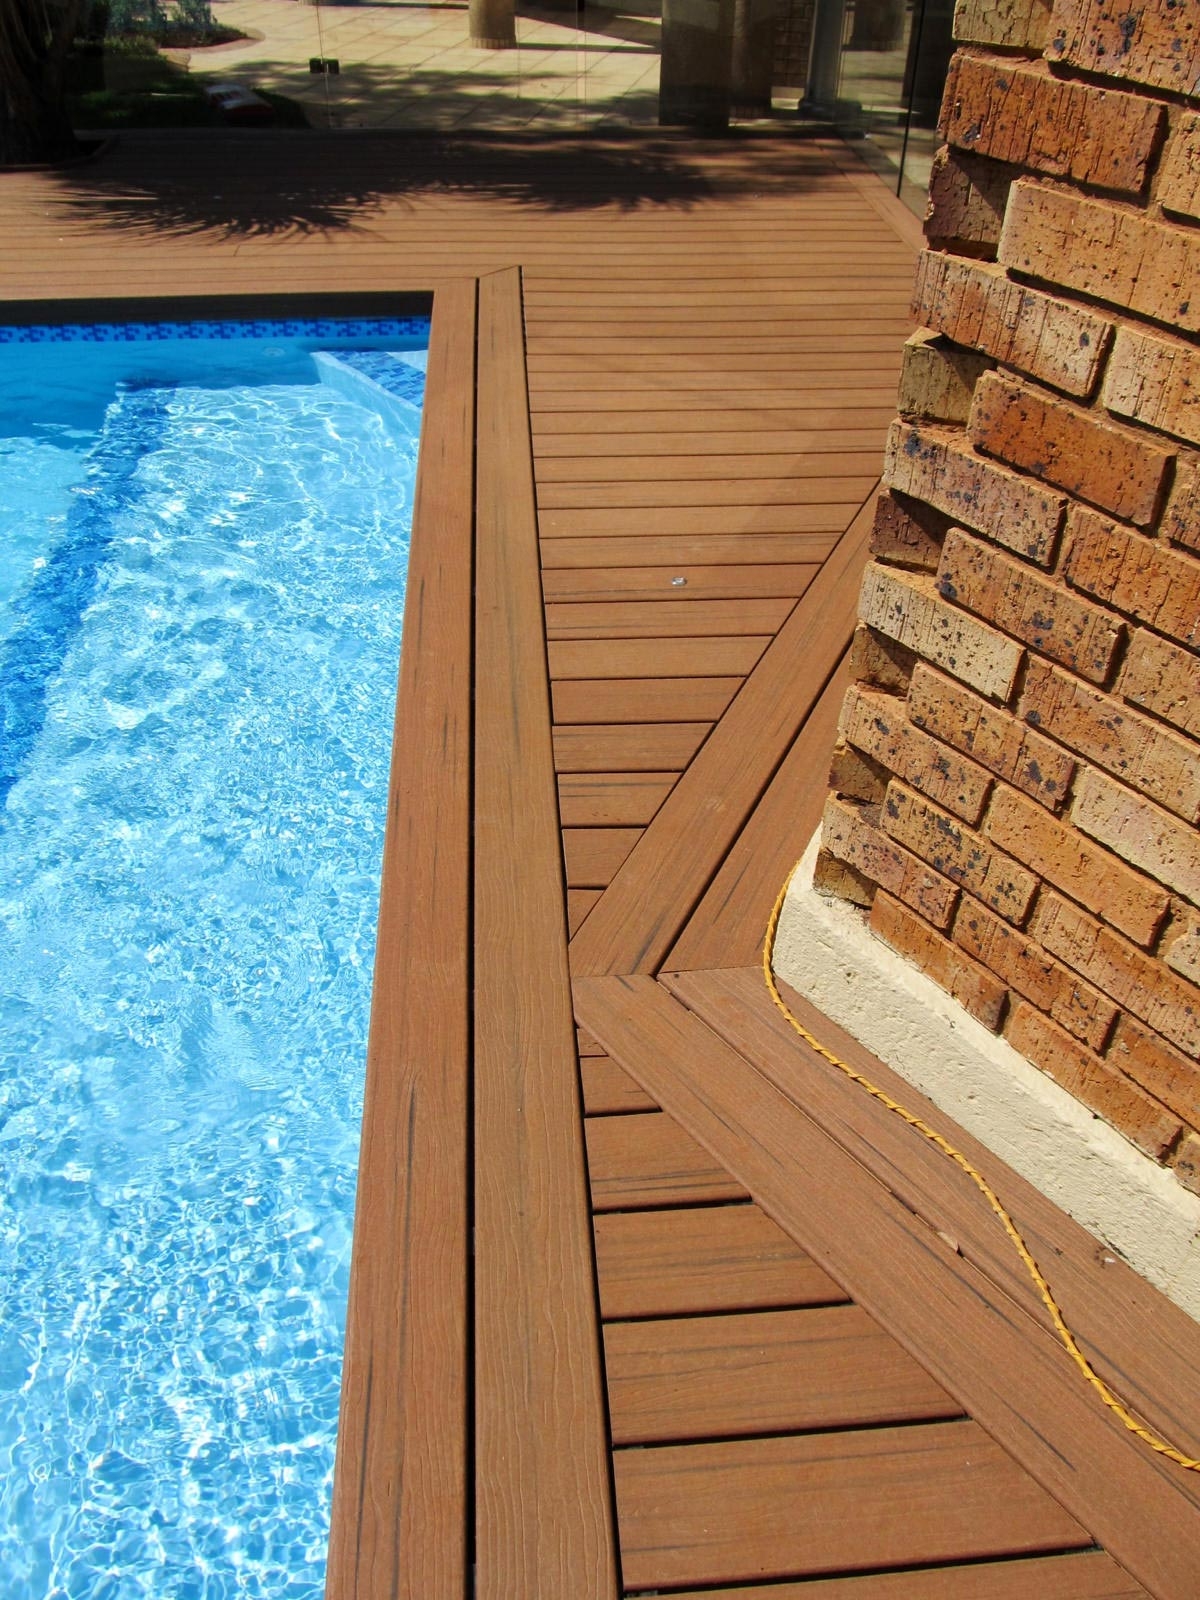 Pool decking closeup